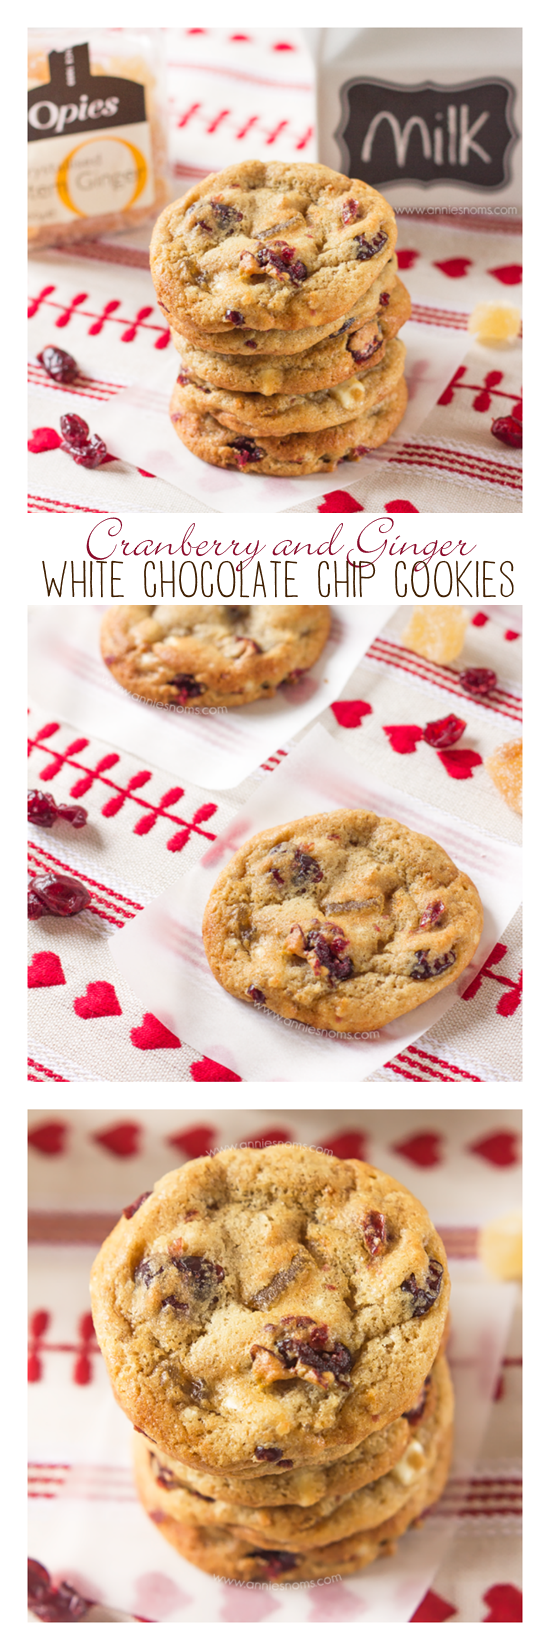 With my famous cookie dough, chunks of crystallized ginger, white chocolate and dried cranberries, these marry tart, sweet and spicy together perfectly for Christmas!